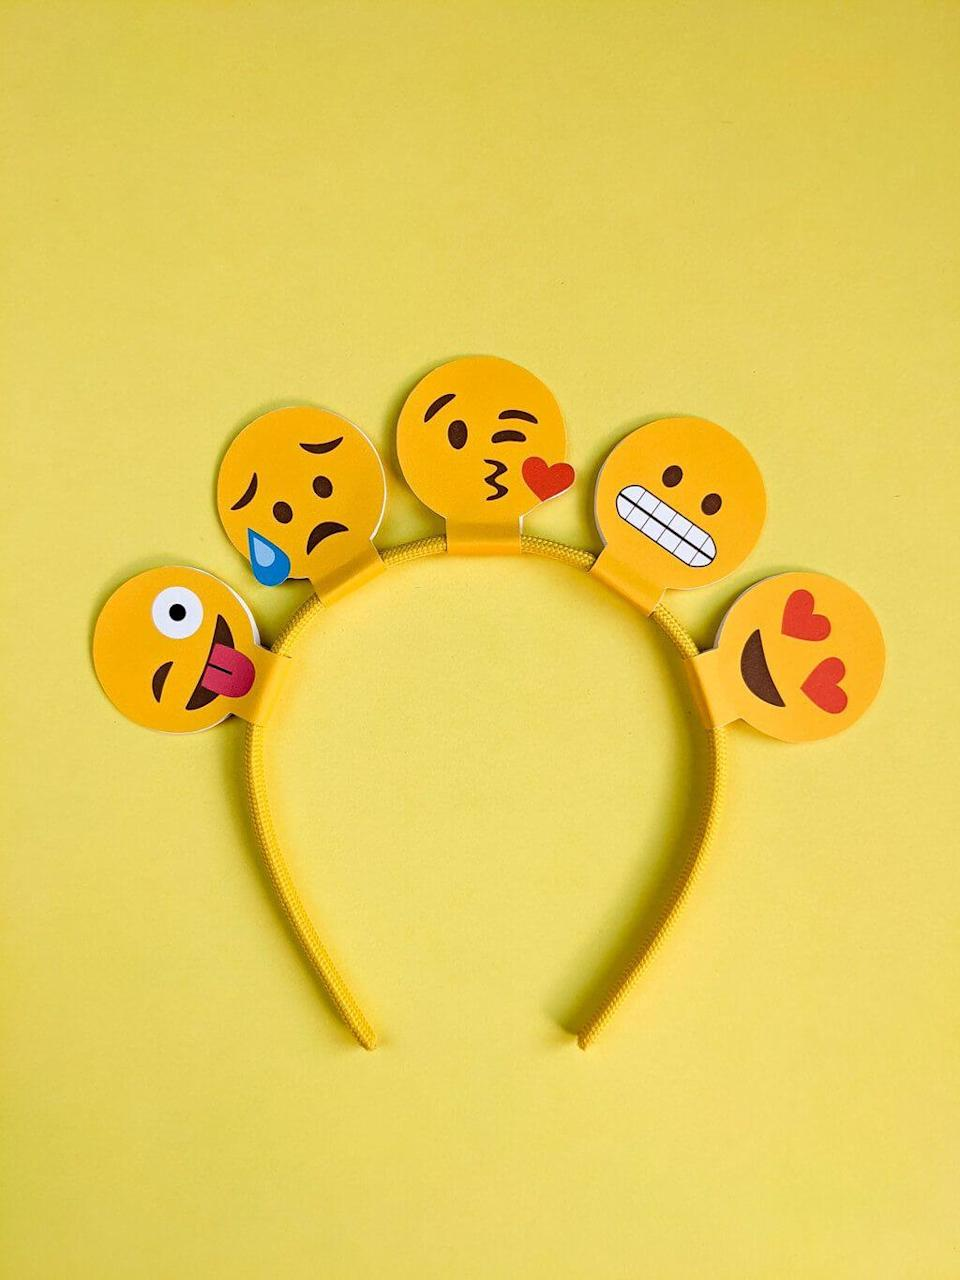 """<p>Oops! It's right before a Halloween party and you don't have a costume locked down yet. This last-minute idea solves that problem handily for kids and adults alike. Transform into an array of emojis with a yellow sweatshirt from the closet and these free printable templates, including a cute emoj-lined headband.</p><p><em><a href=""""https://www.merrimentdesign.com/easy-emoji-halloween-costume-diy-last-minute.php"""" rel=""""nofollow noopener"""" target=""""_blank"""" data-ylk=""""slk:Get the printable at Merriment Design »"""" class=""""link rapid-noclick-resp"""">Get the printable at Merriment Design »</a></em></p><p><strong>RELATED: </strong><a href=""""https://www.goodhousekeeping.com/holidays/halloween-ideas/g2750/easy-last-minute-halloween-costumes-diy/"""" rel=""""nofollow noopener"""" target=""""_blank"""" data-ylk=""""slk:65 Last-Minute Halloween Costume Ideas You Can Easily DIY Before Your Big Party"""" class=""""link rapid-noclick-resp"""">65 Last-Minute Halloween Costume Ideas You Can Easily DIY Before Your Big Party</a></p>"""